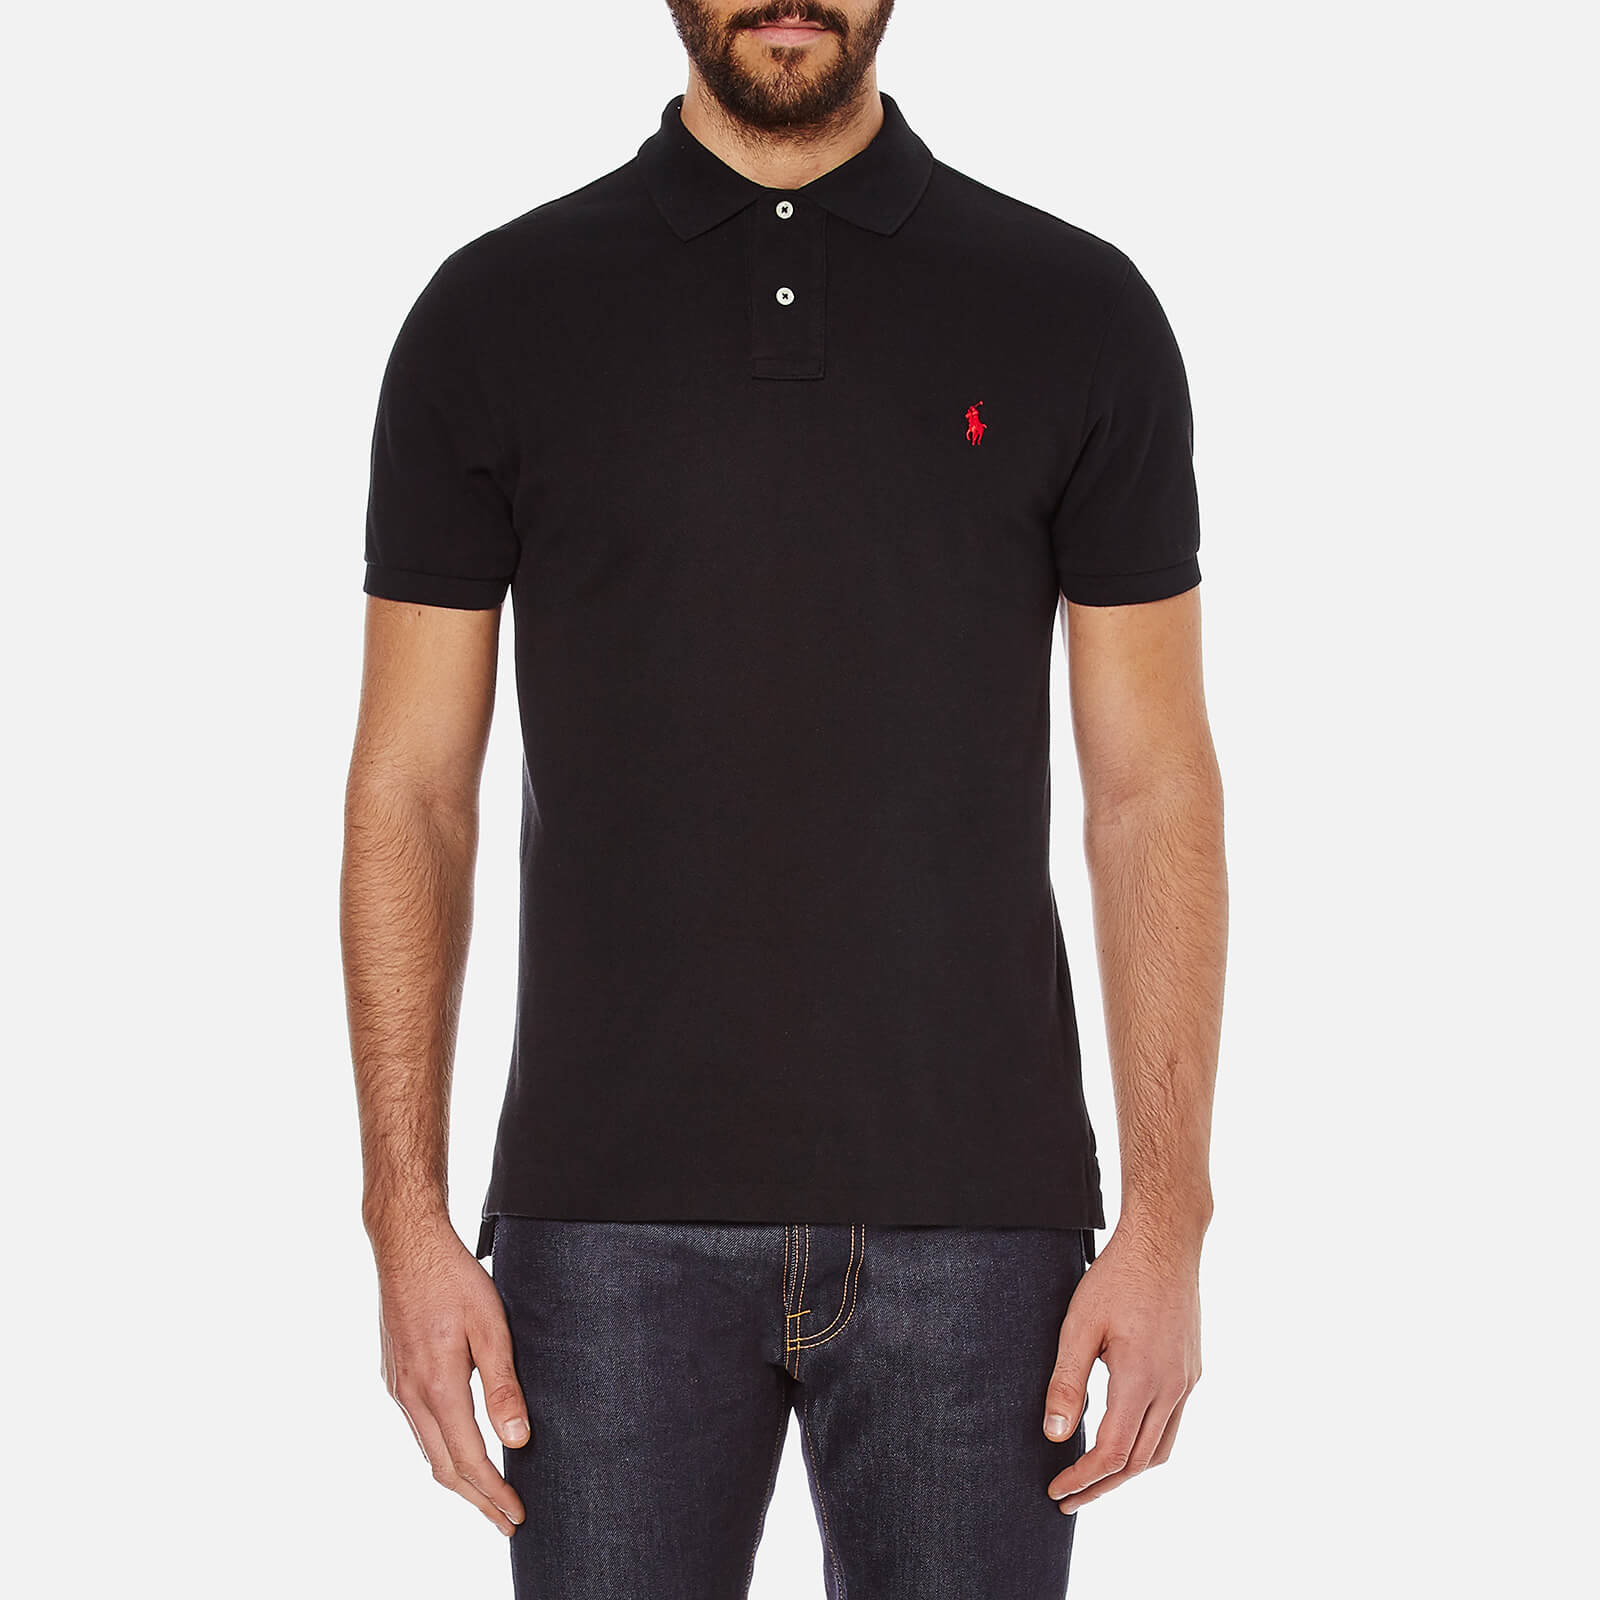 a5d6dd94564 Polo Ralph Lauren Men s Slim Fit Short Sleeved Polo Shirt - Polo Black -  Free UK Delivery over £50